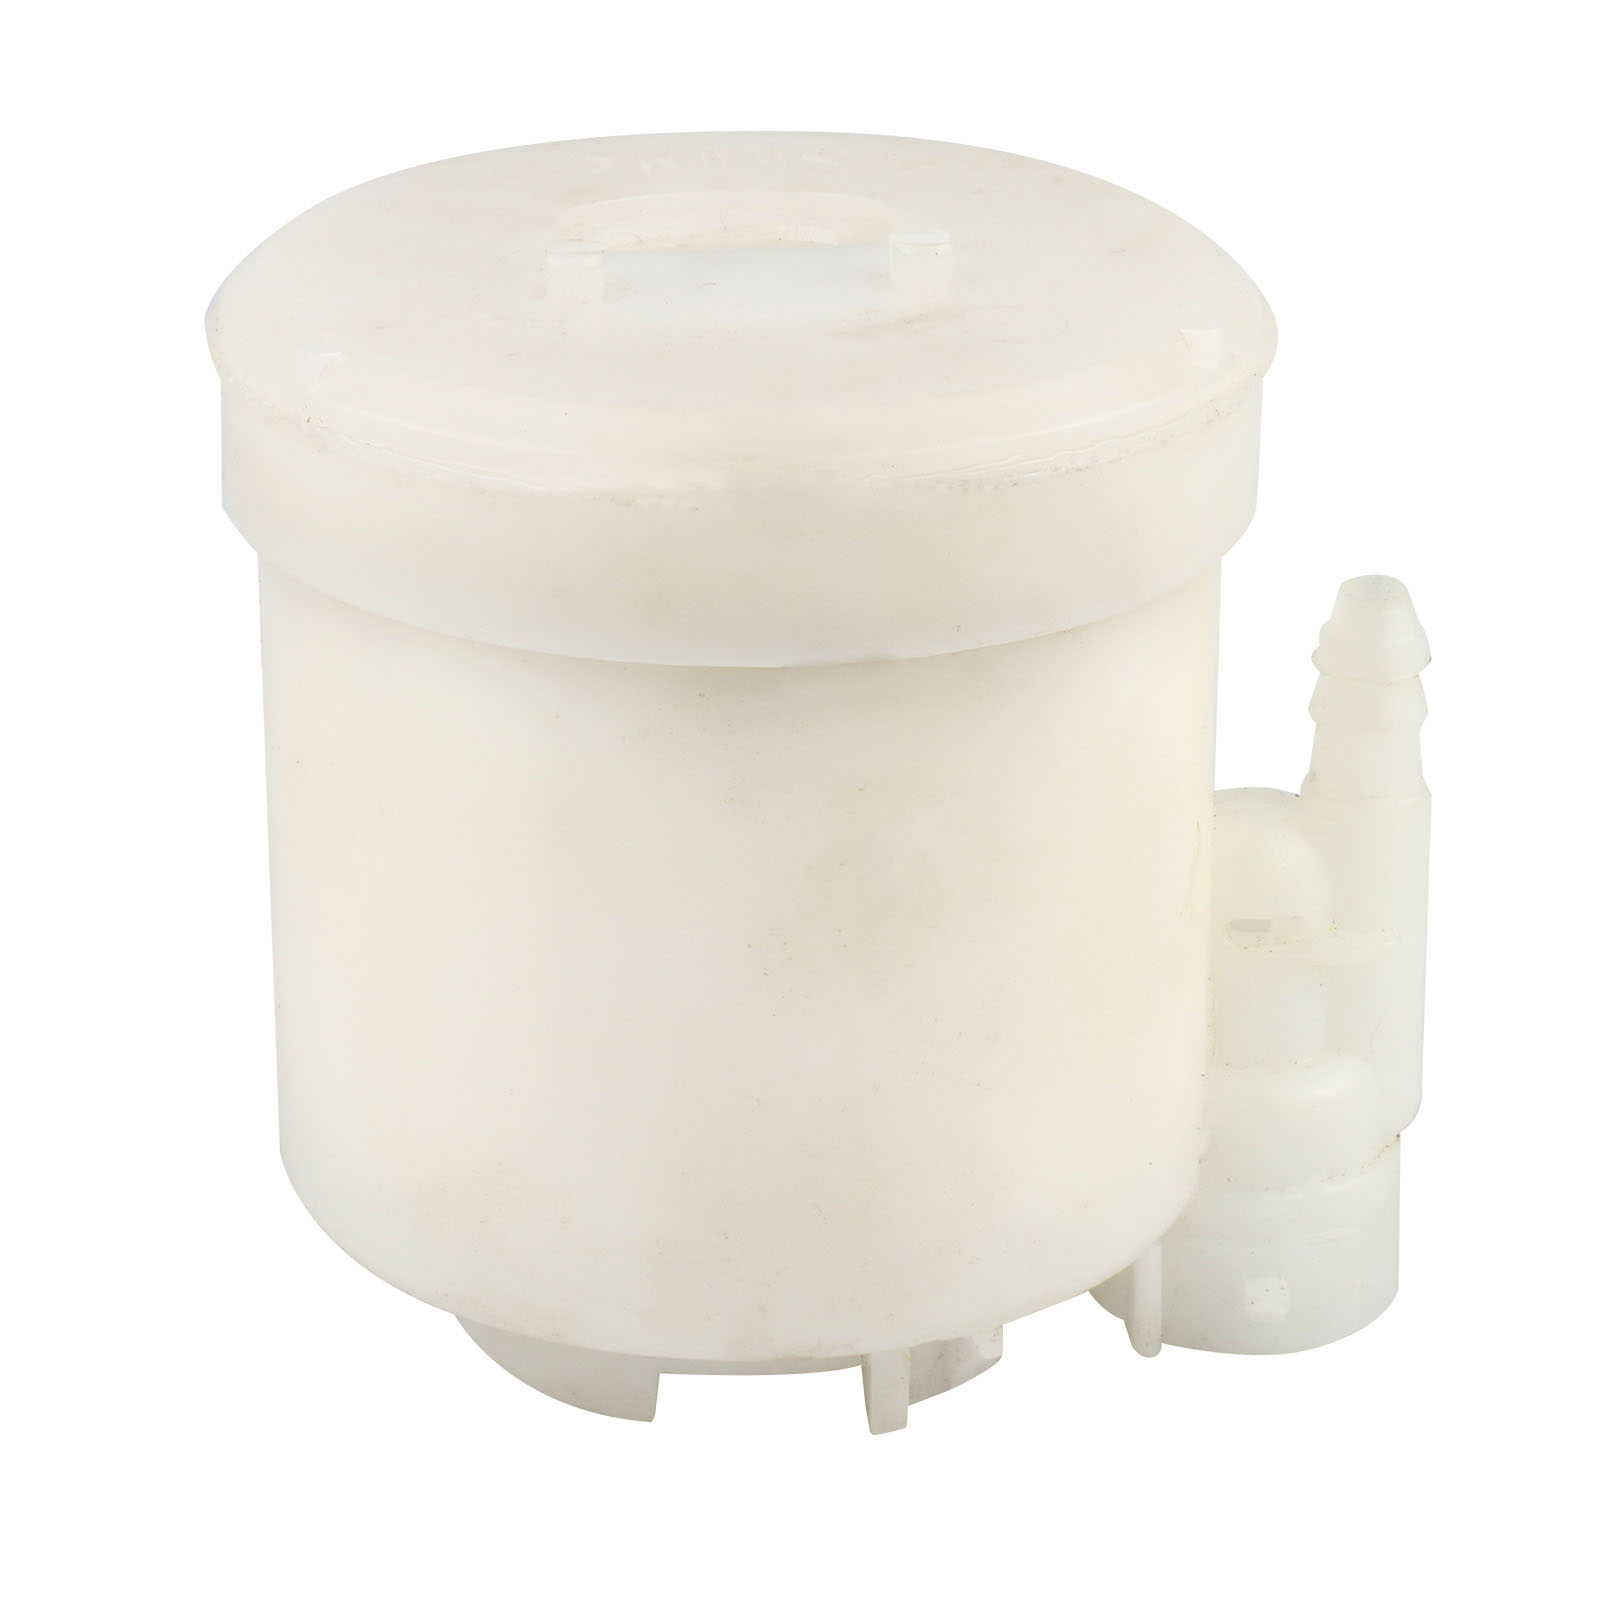 Car Gas Gasoline Petrol Fuel Filter Oe 77024 02120 Replacement Parts Corolla For Toyota 2007 16 18l Vehicle Maintenance On Alibaba Group